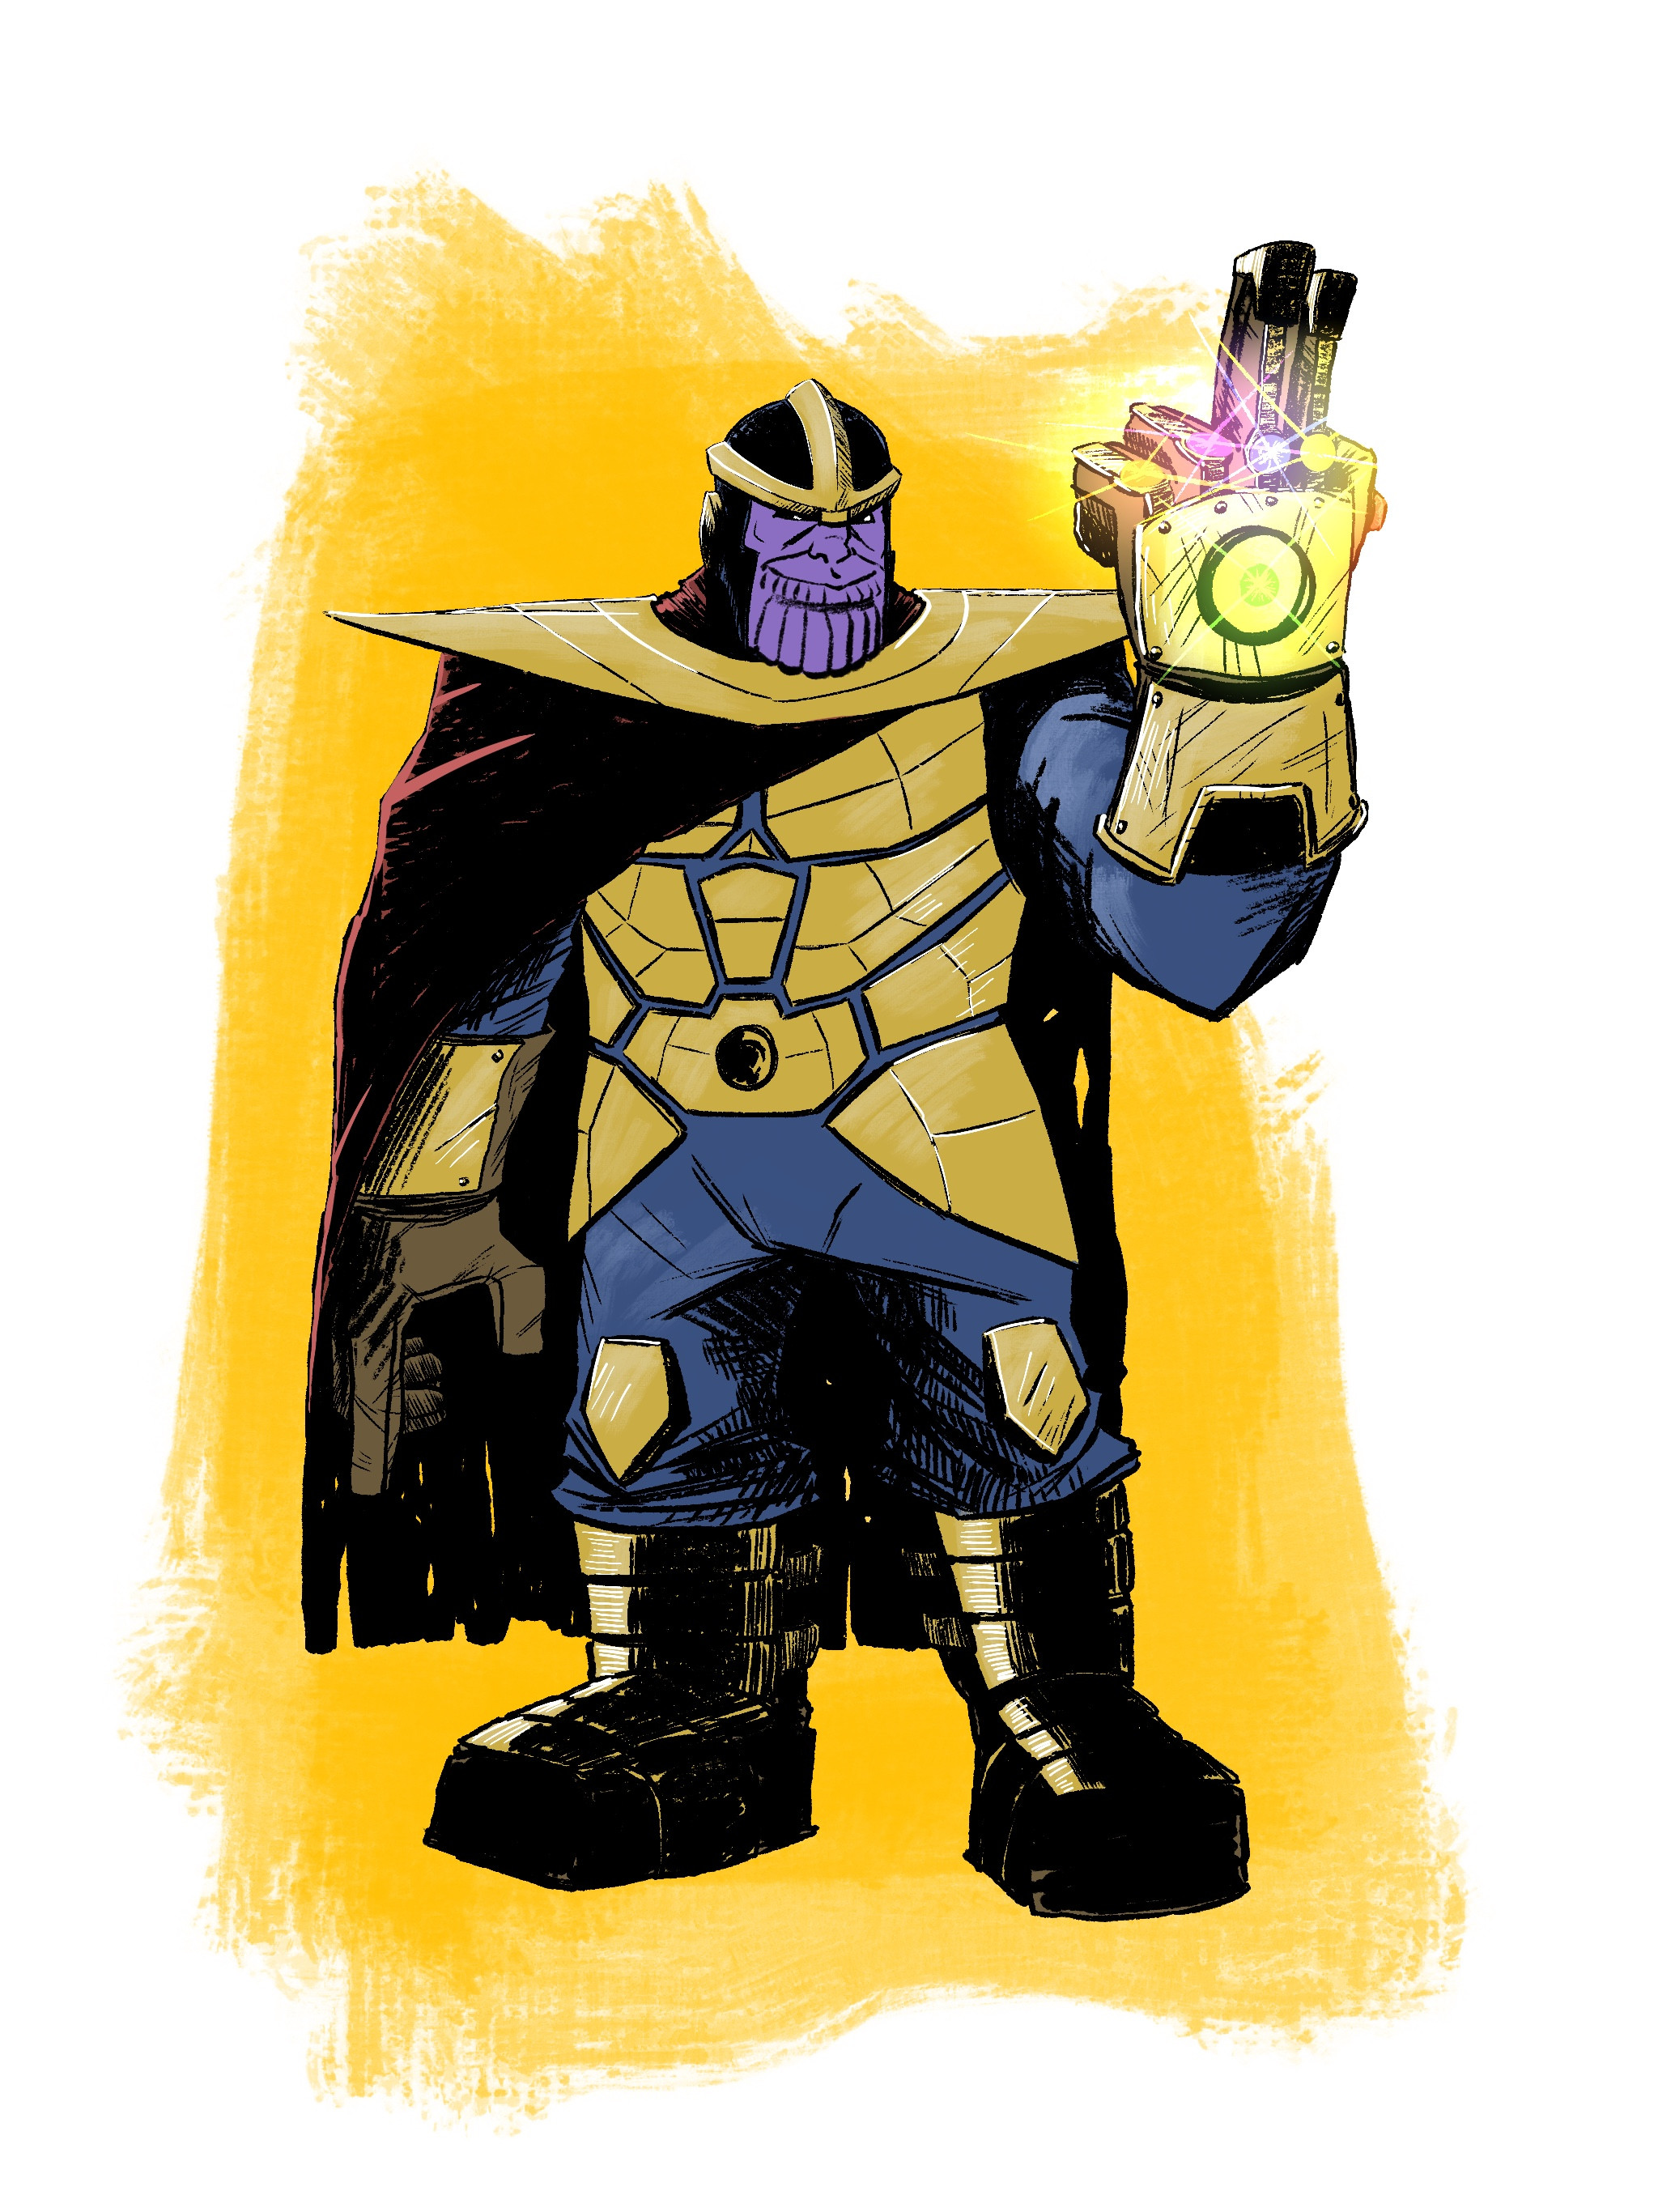 The Mad Titan, Thanos - Digital in Procreate